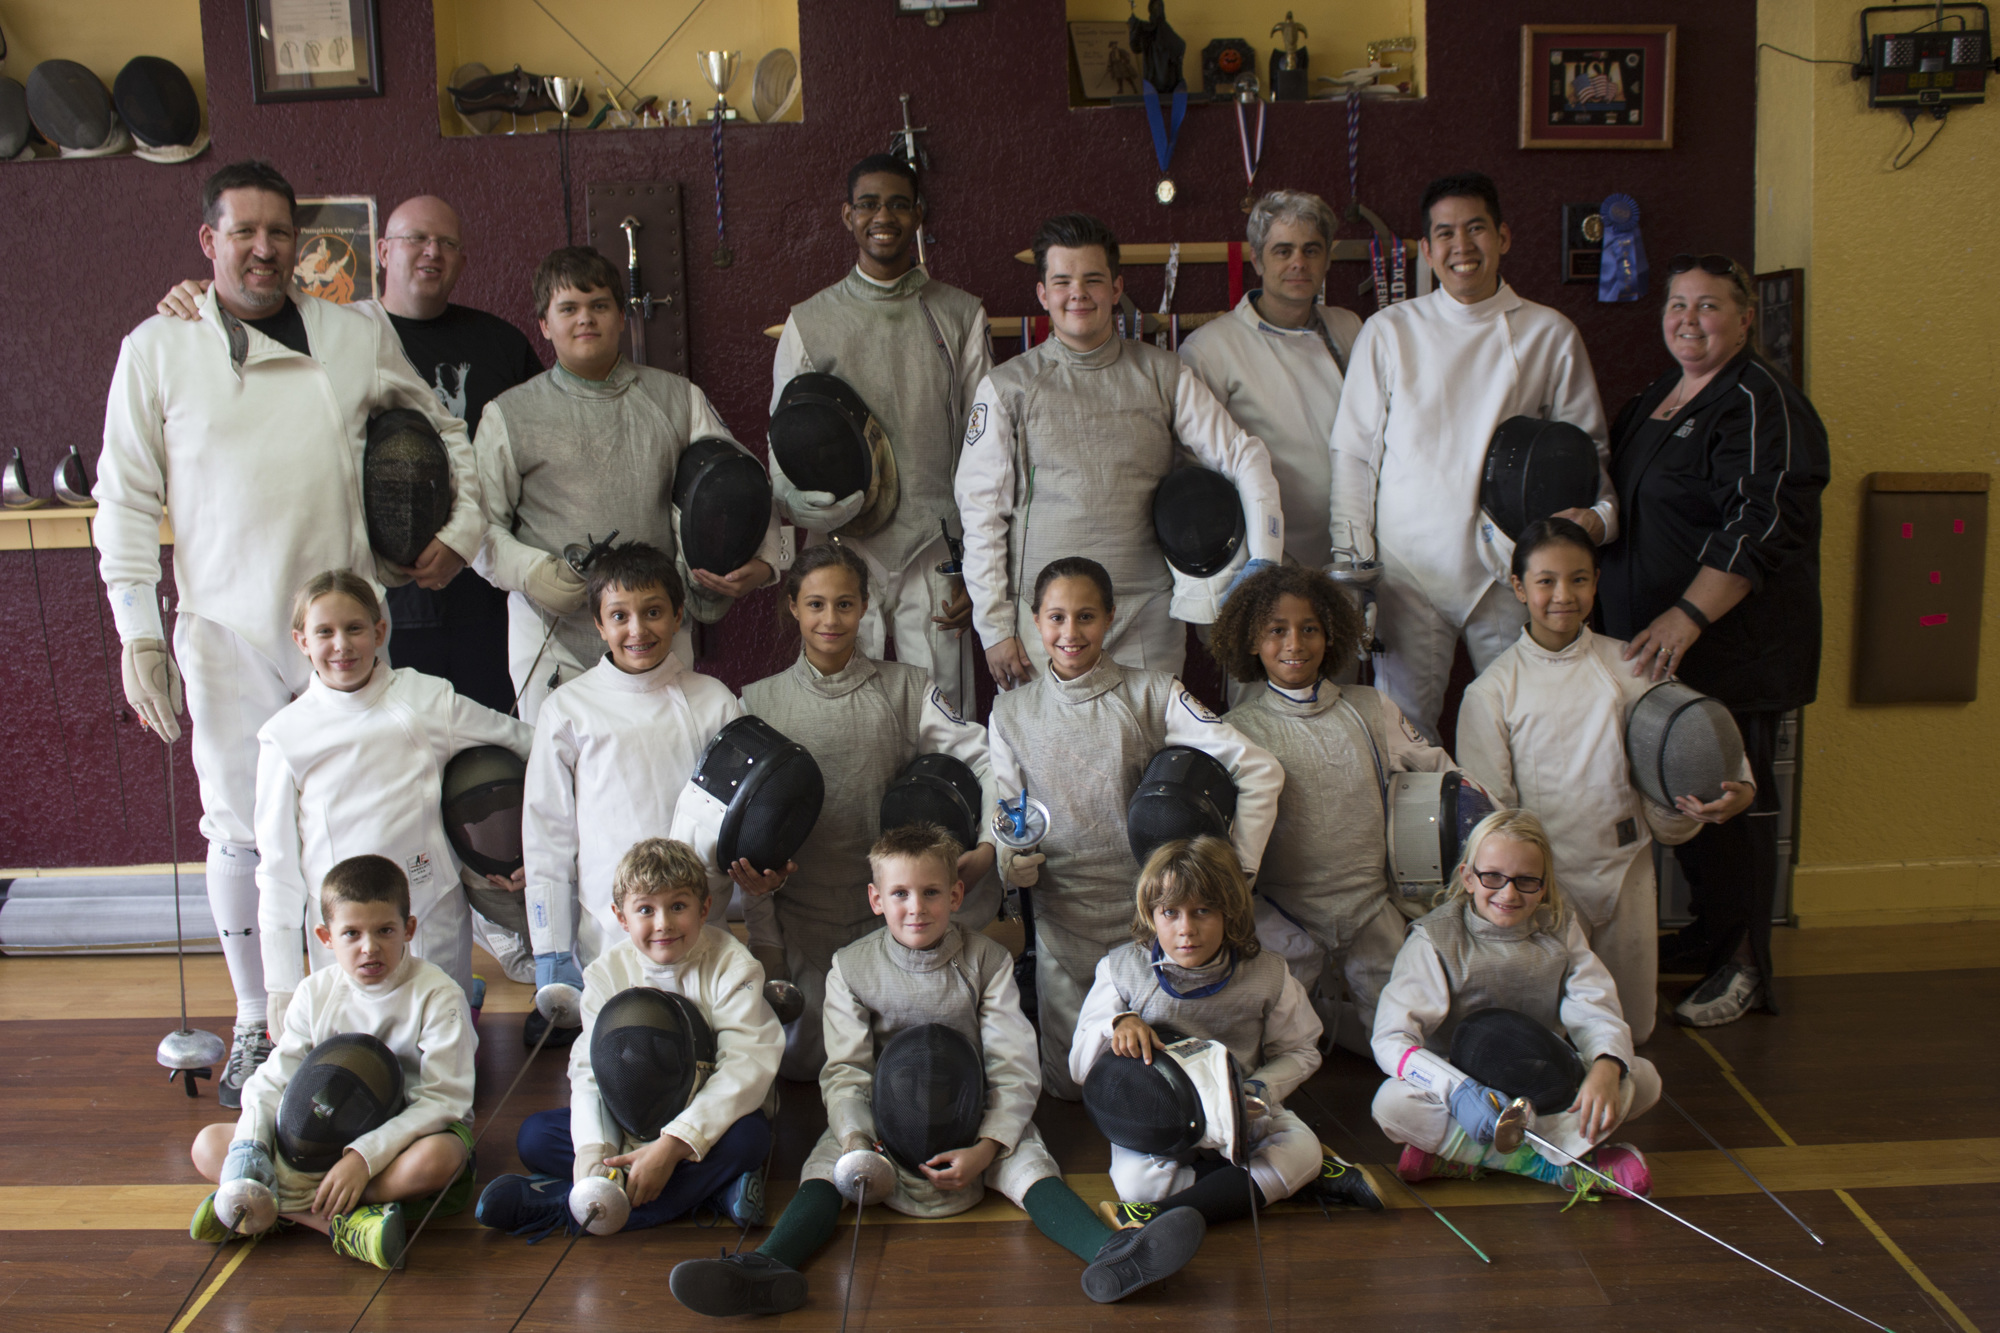 winter garden fencing academy recognized for membership diversity